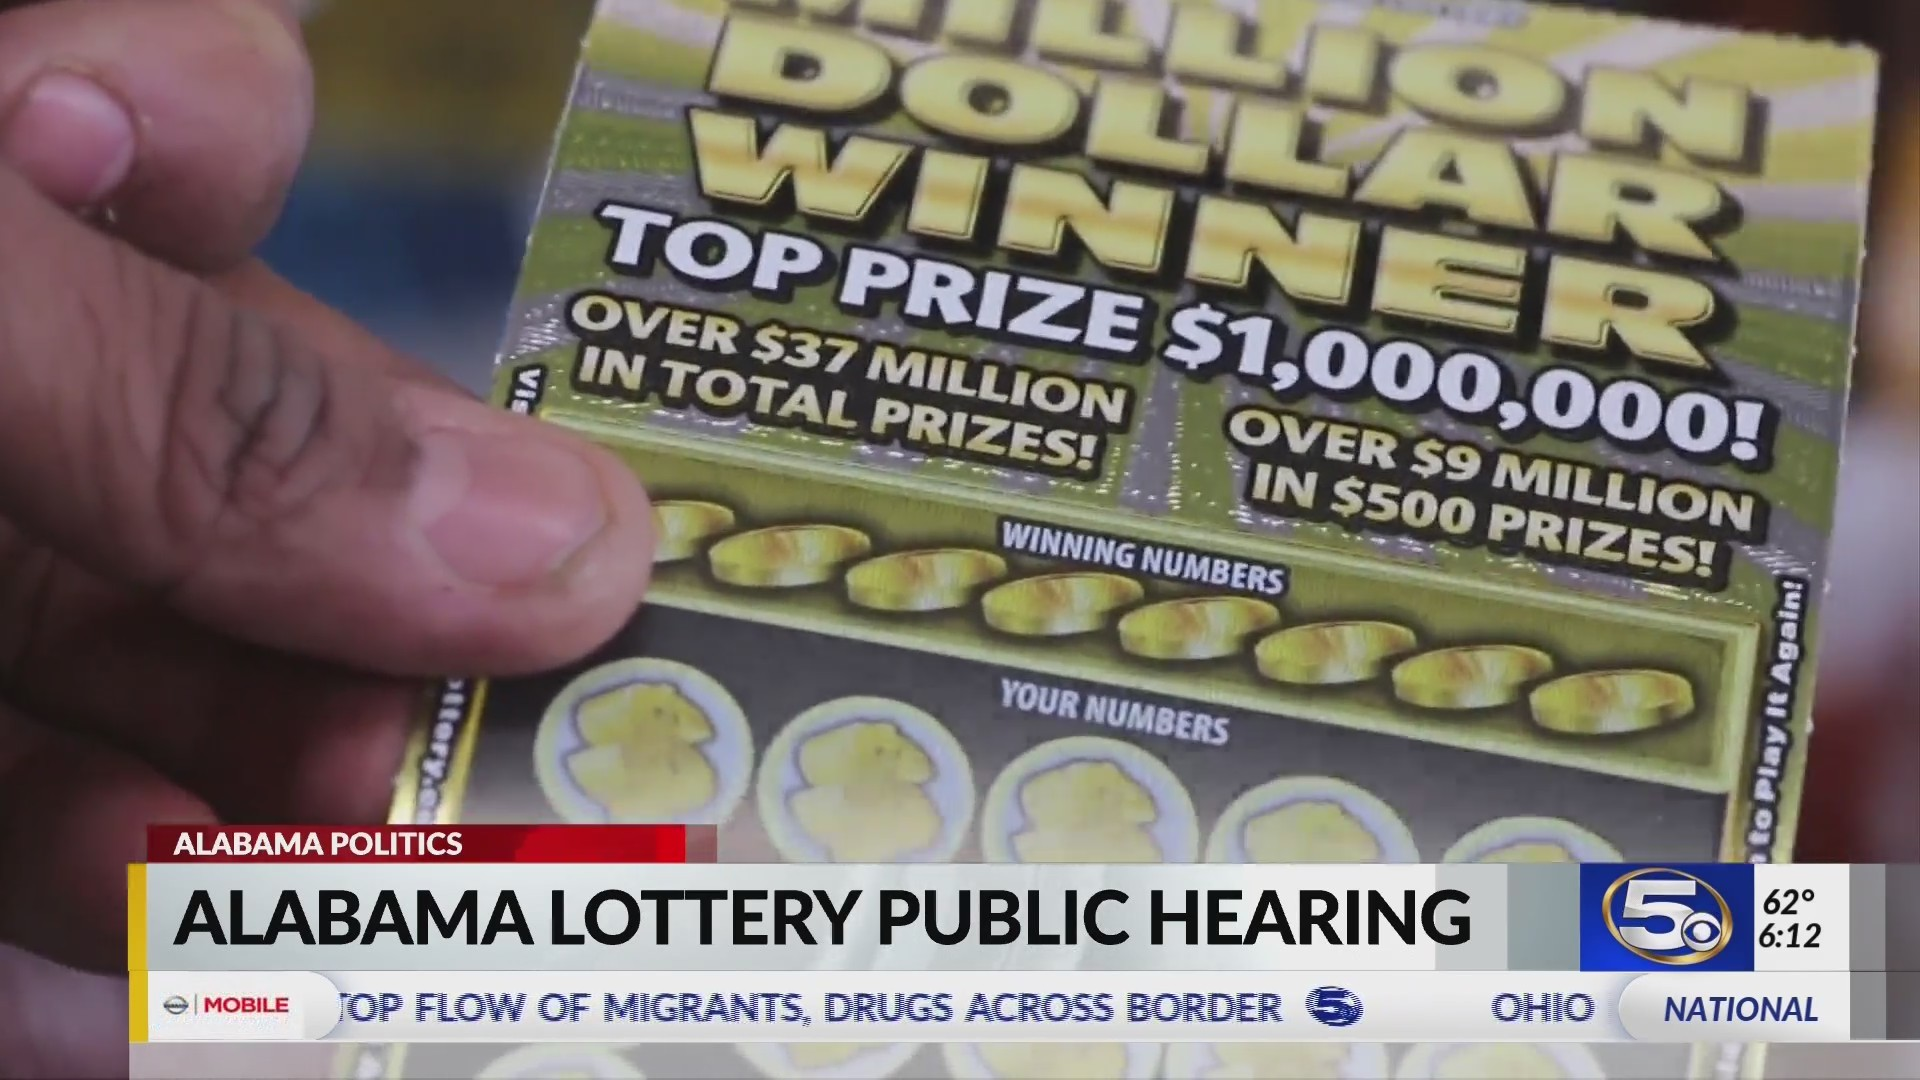 VIDEO__Alabama_lottery_debate_continues_0_20190405011140